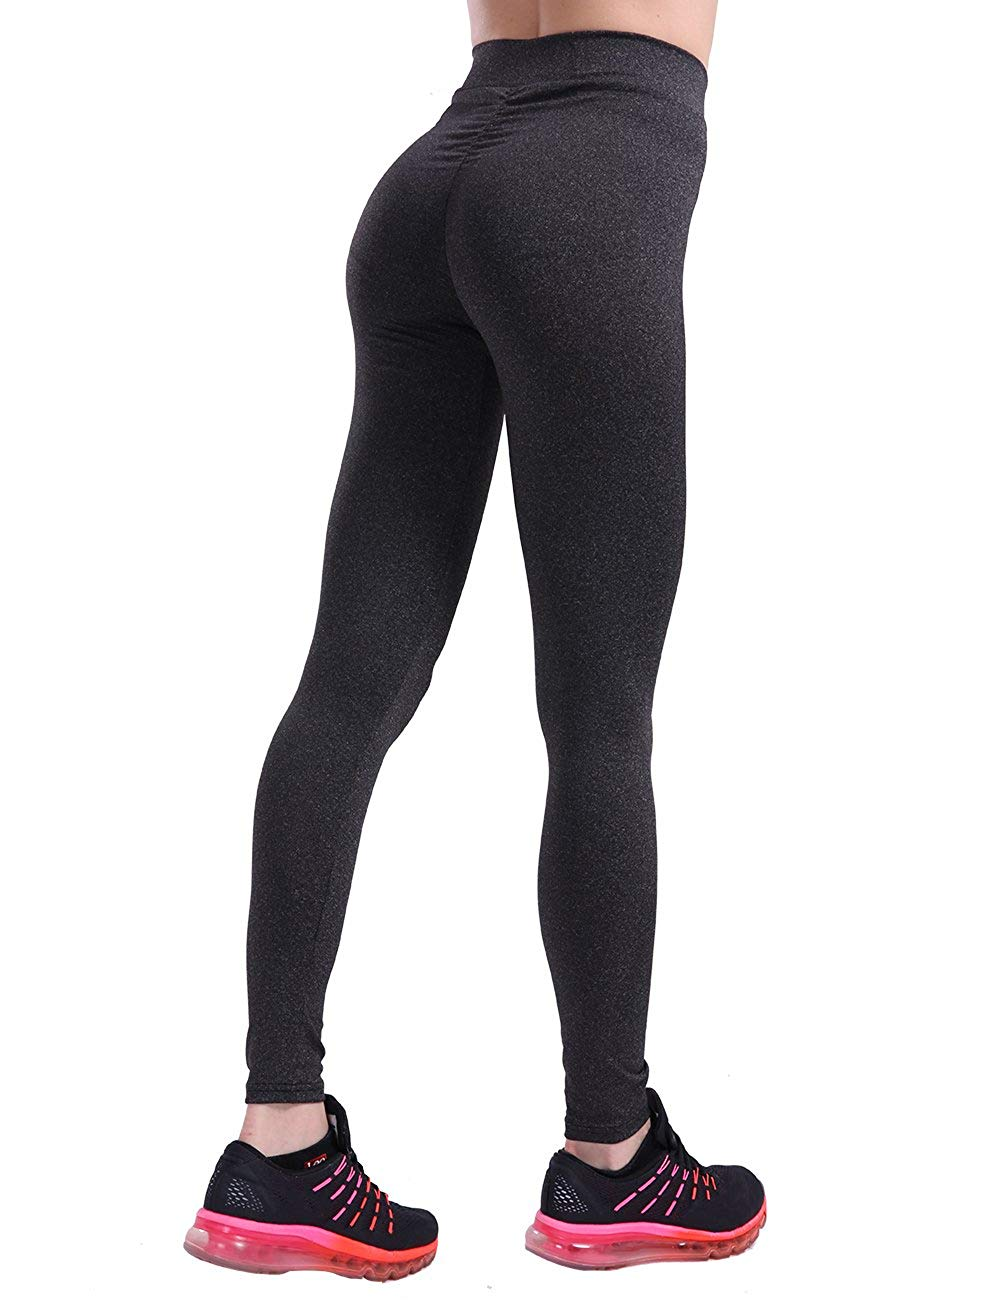 188bee2456640 Get Quotations · CHRLEISURE Workout Leggings for Women - High Waisted  Leggings with Scrunch Butt, Push Up,